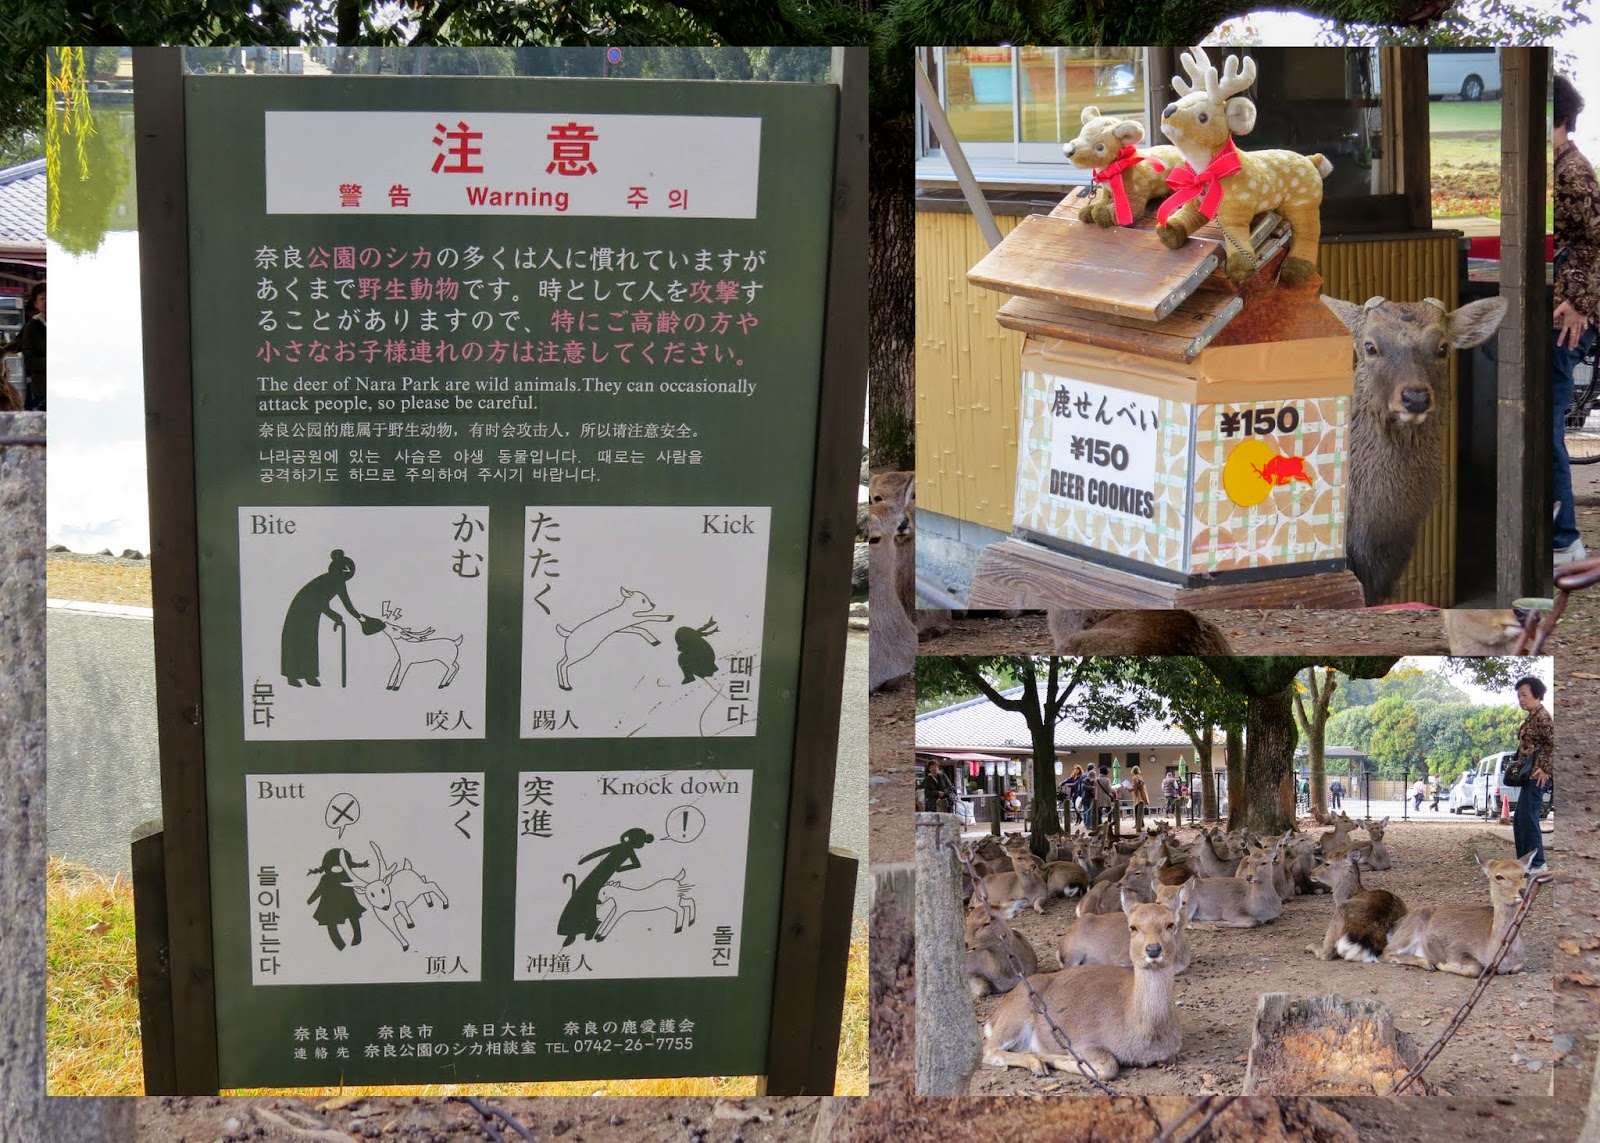 The Deer at Nara, Japan